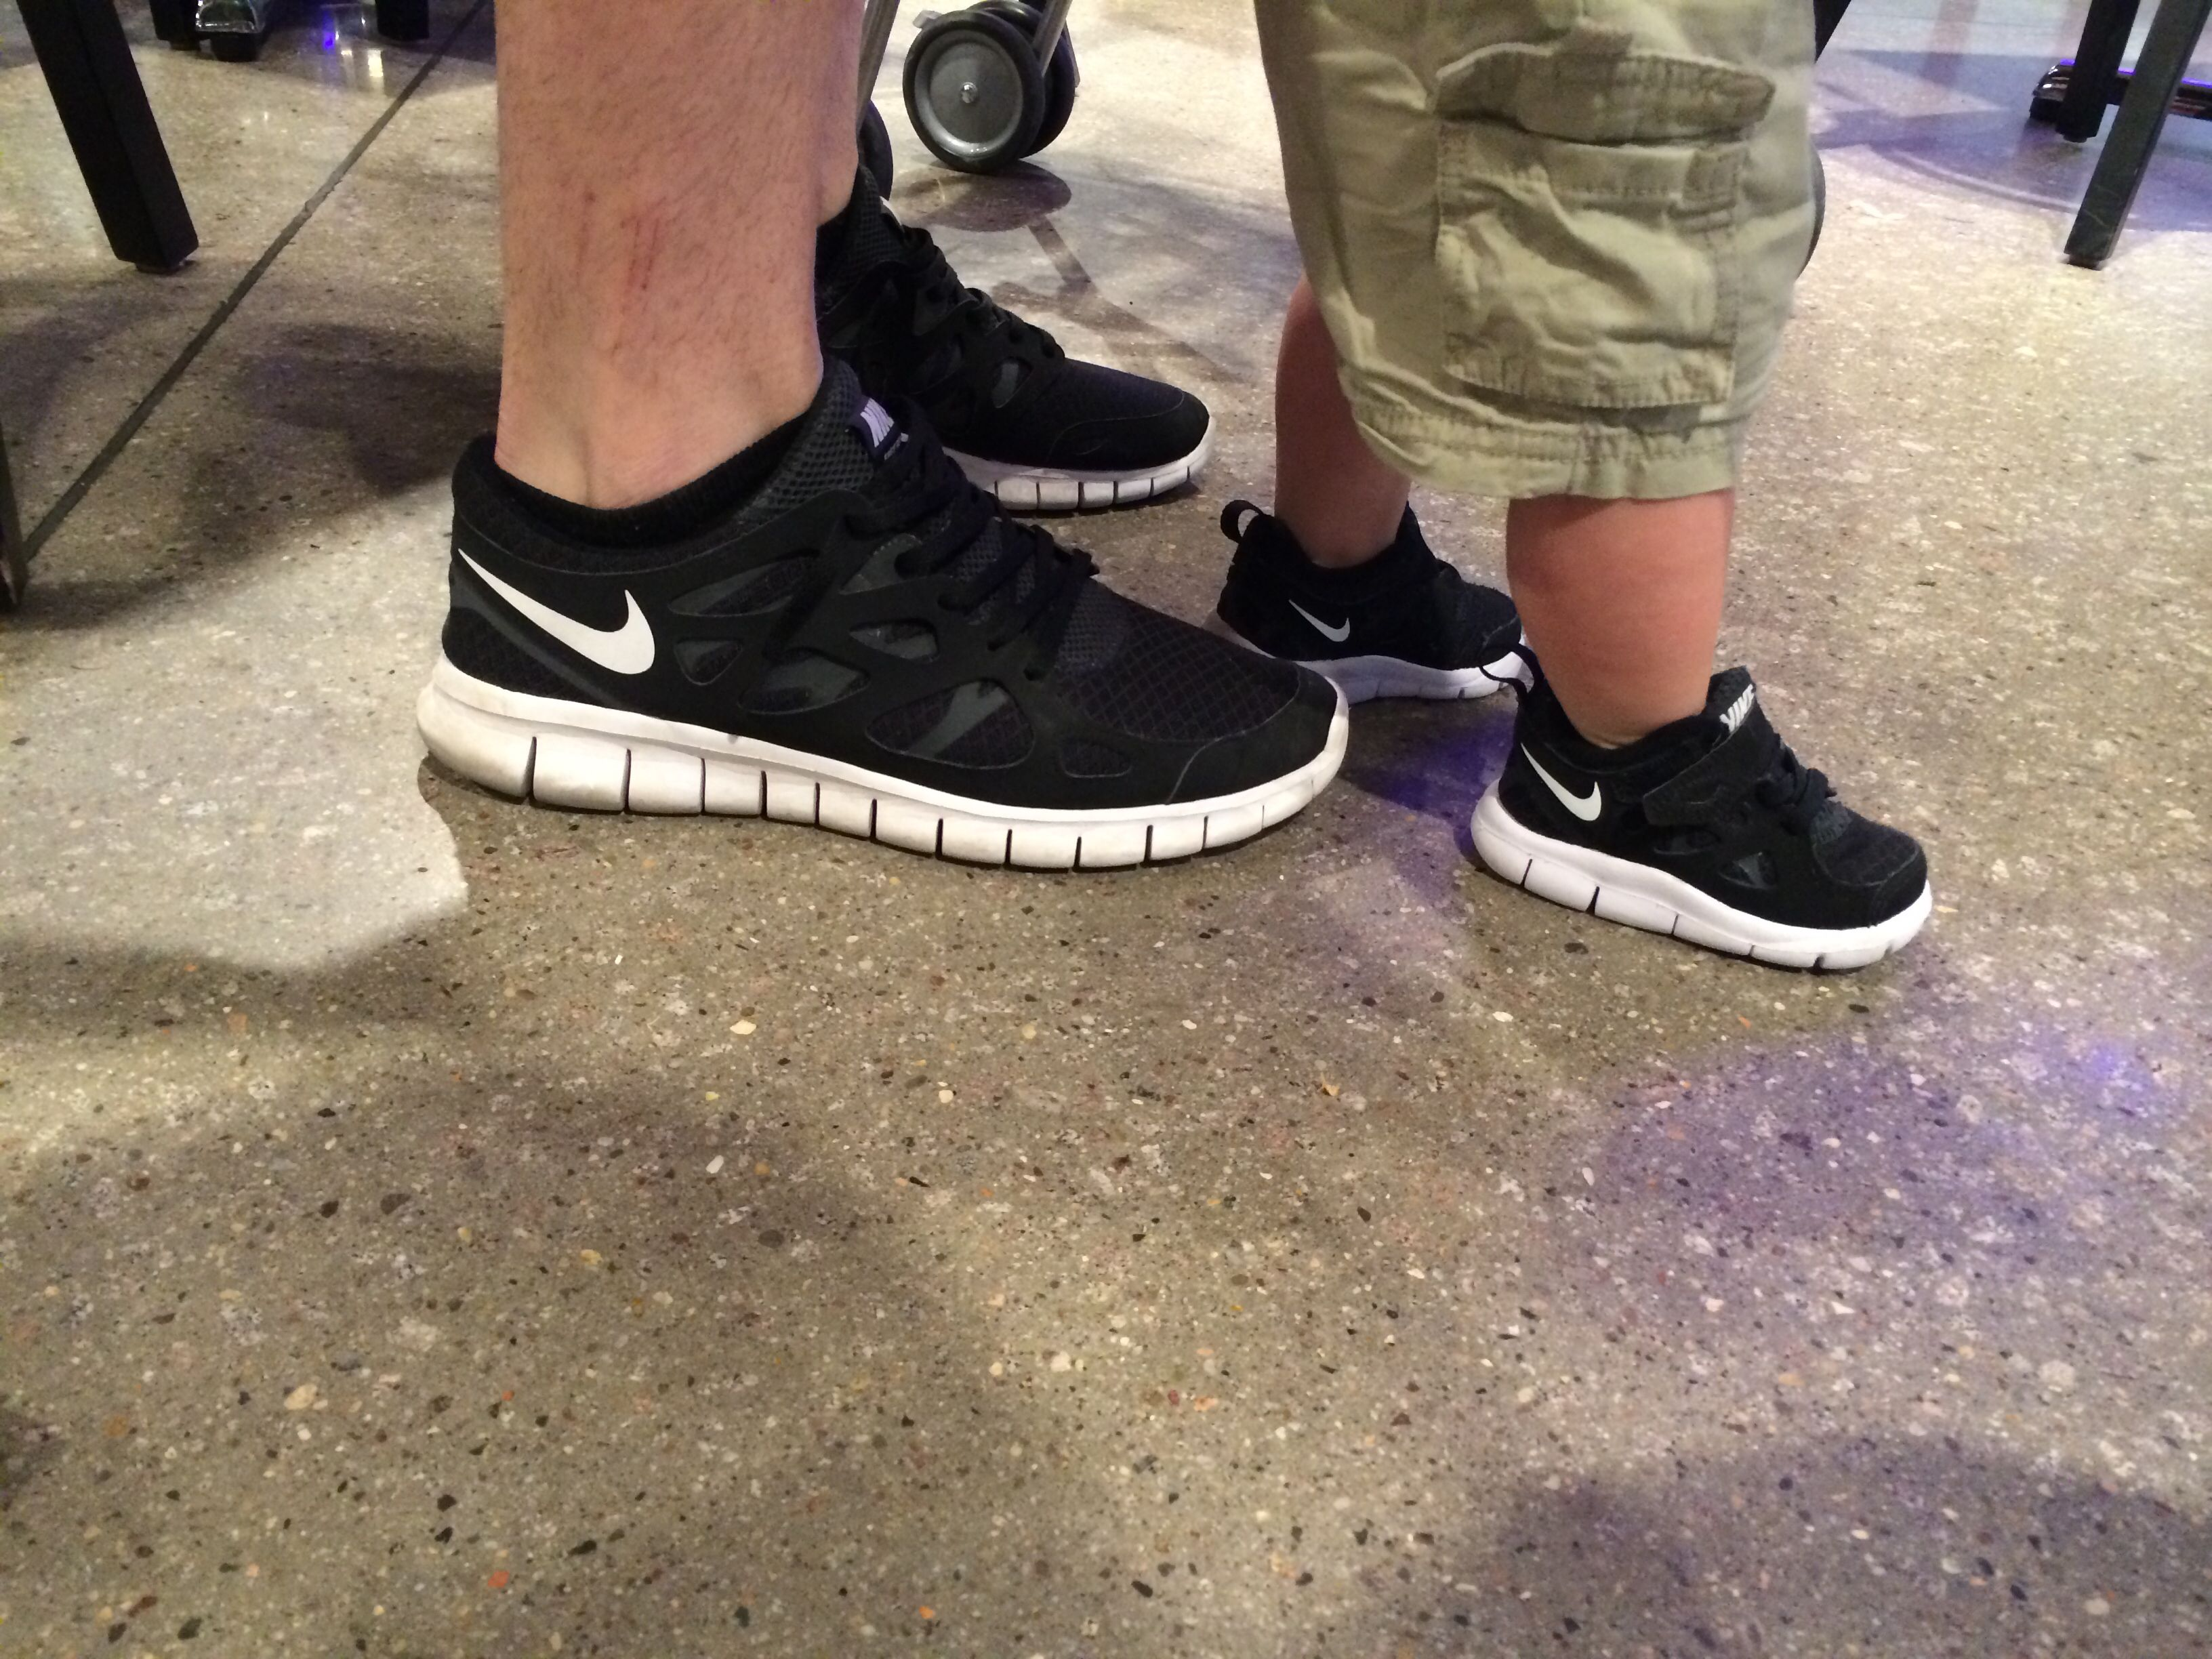 superior quality c065d 45cec Father son matching shoes. Nike. Free run